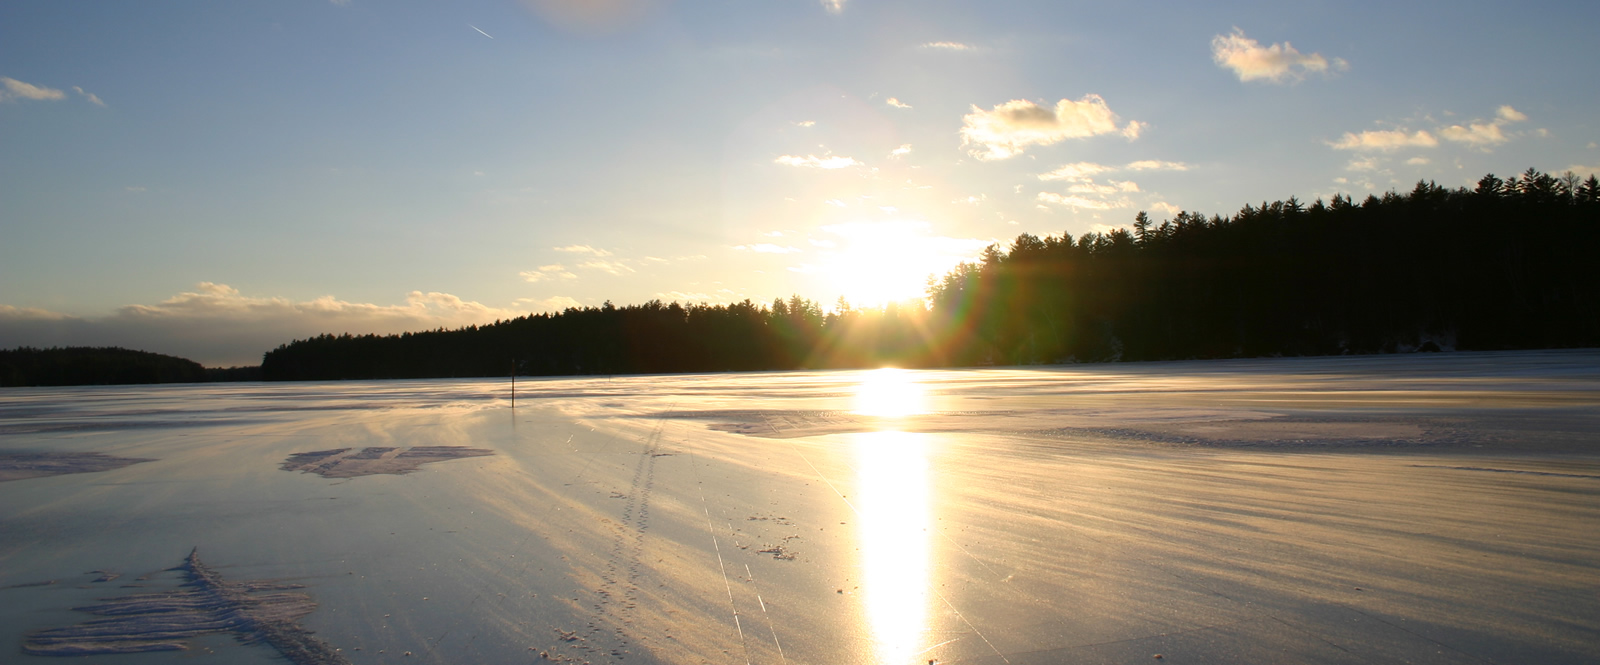 Late afternoon sun poking over trees on an icy lake